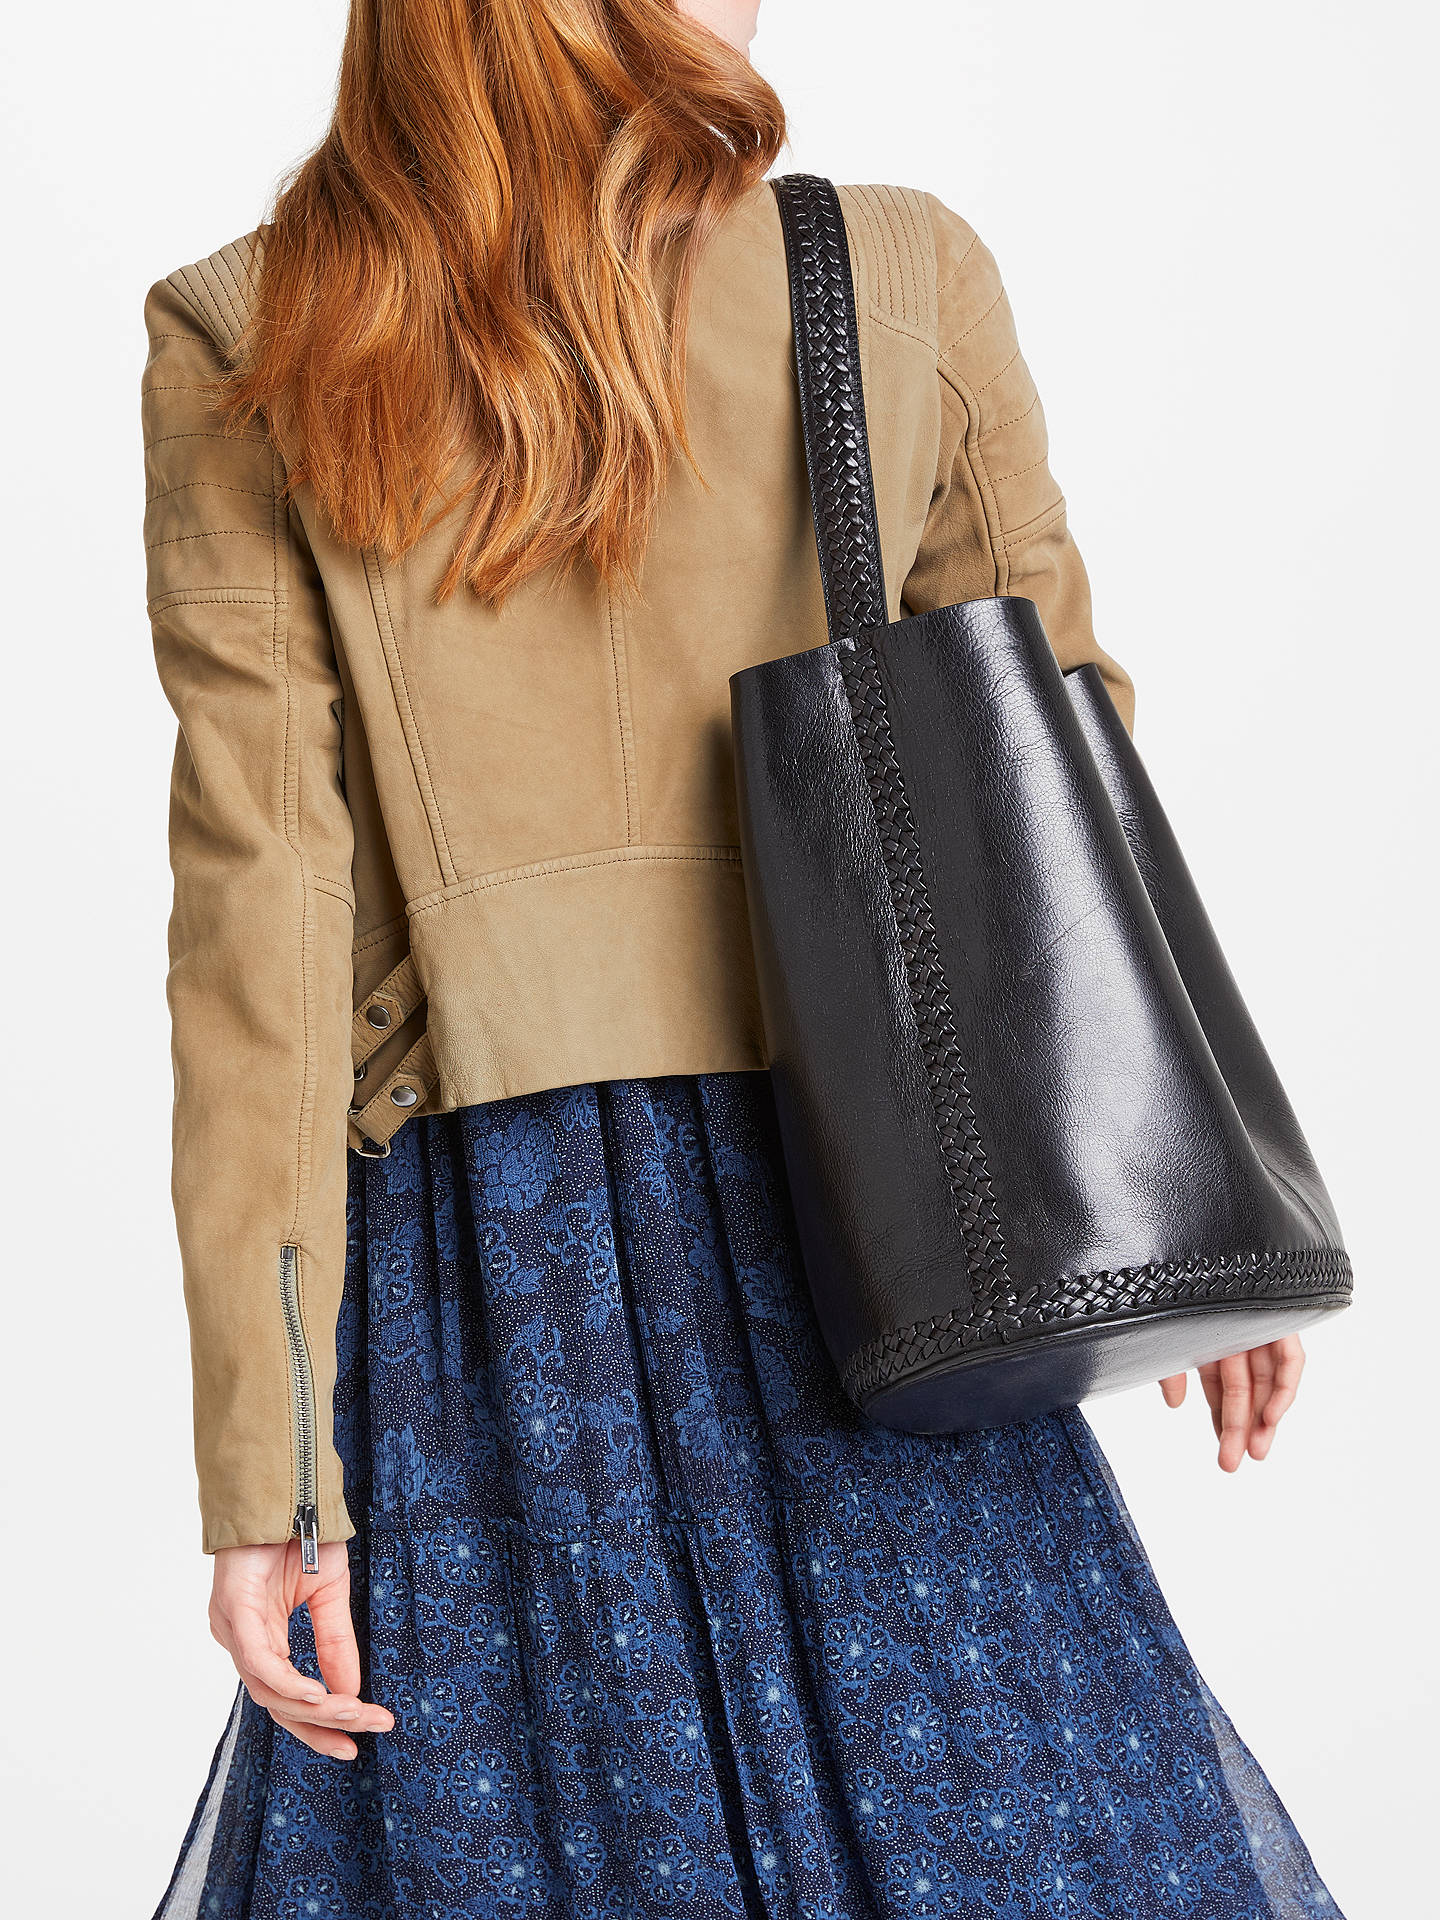 BuyAND/OR Isabella Leather Whipstitch Bucket Bag, Black Online at johnlewis.com